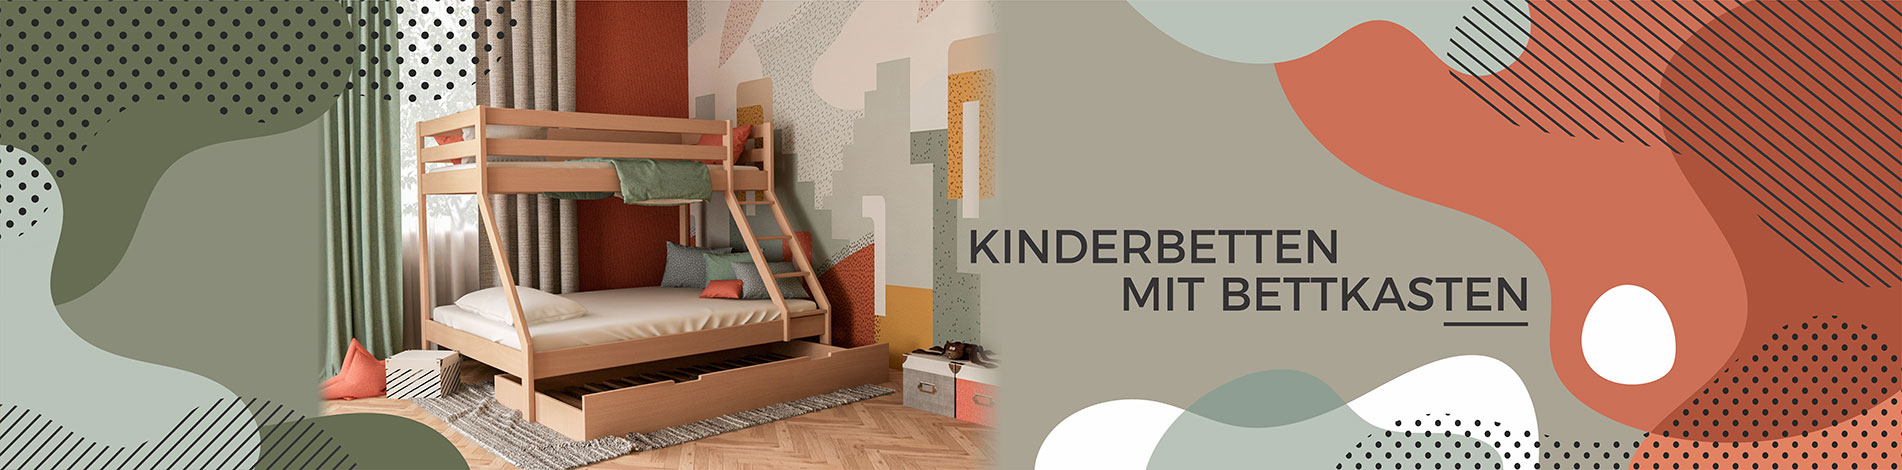 Kinderbetten mit bettkasten 20042019